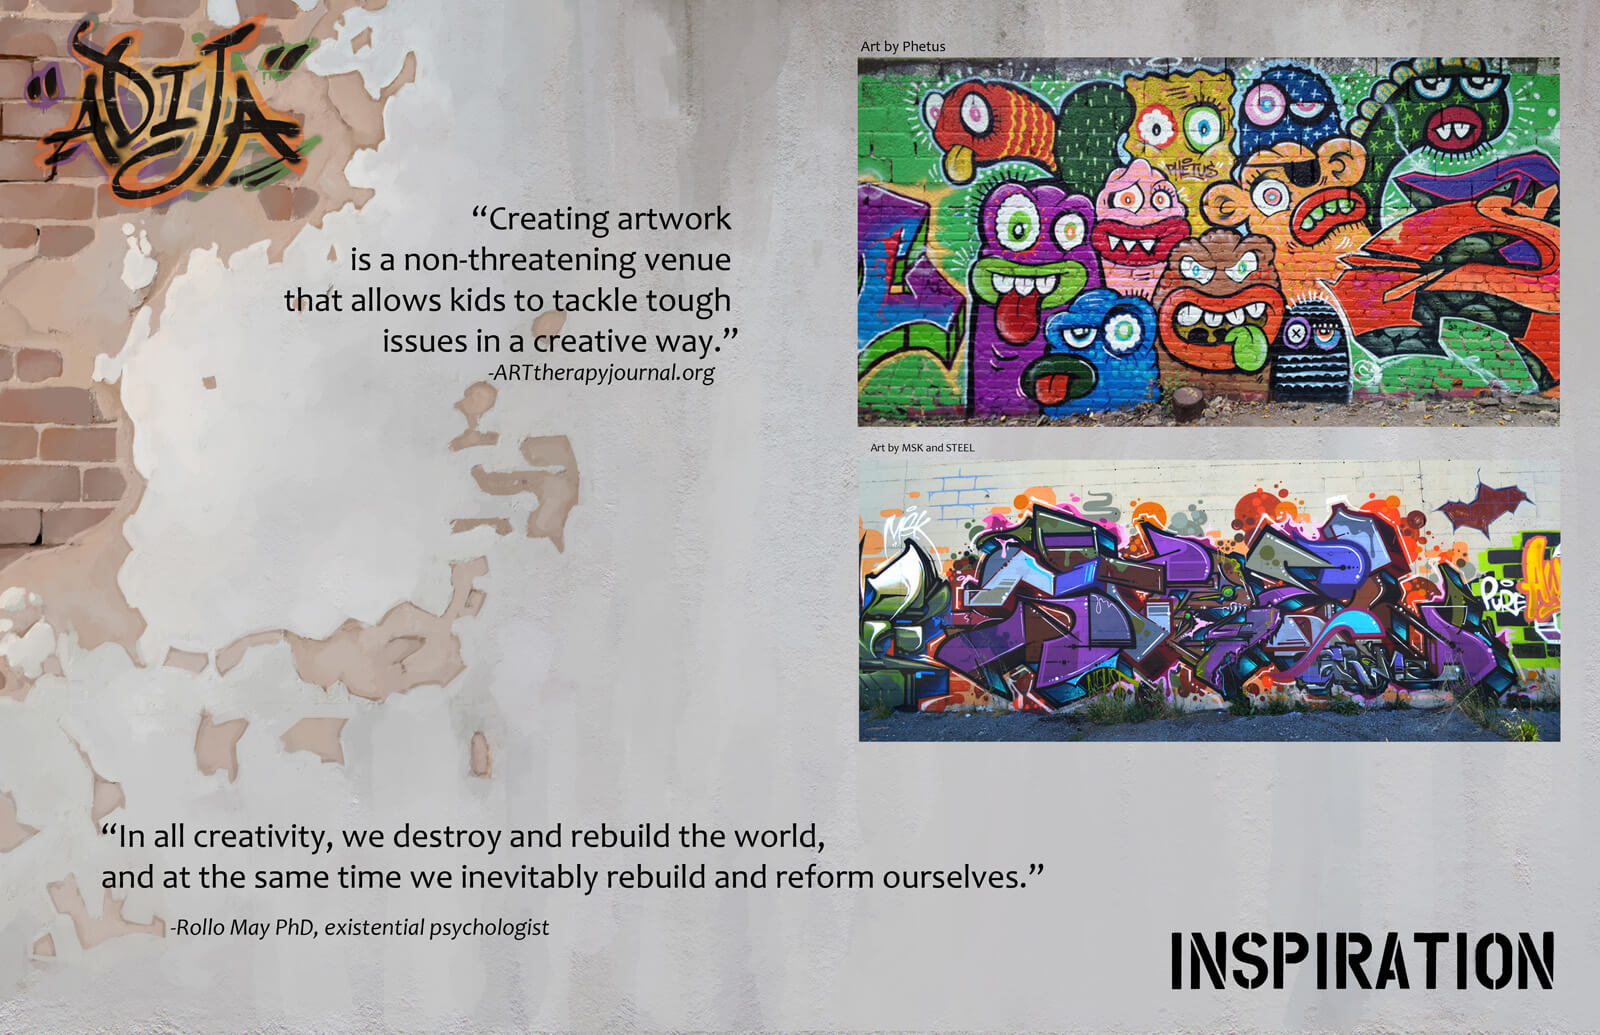 A presentation slide explaining the inspiration for the film Adija. Two images of colorful graffiti walls are seen.